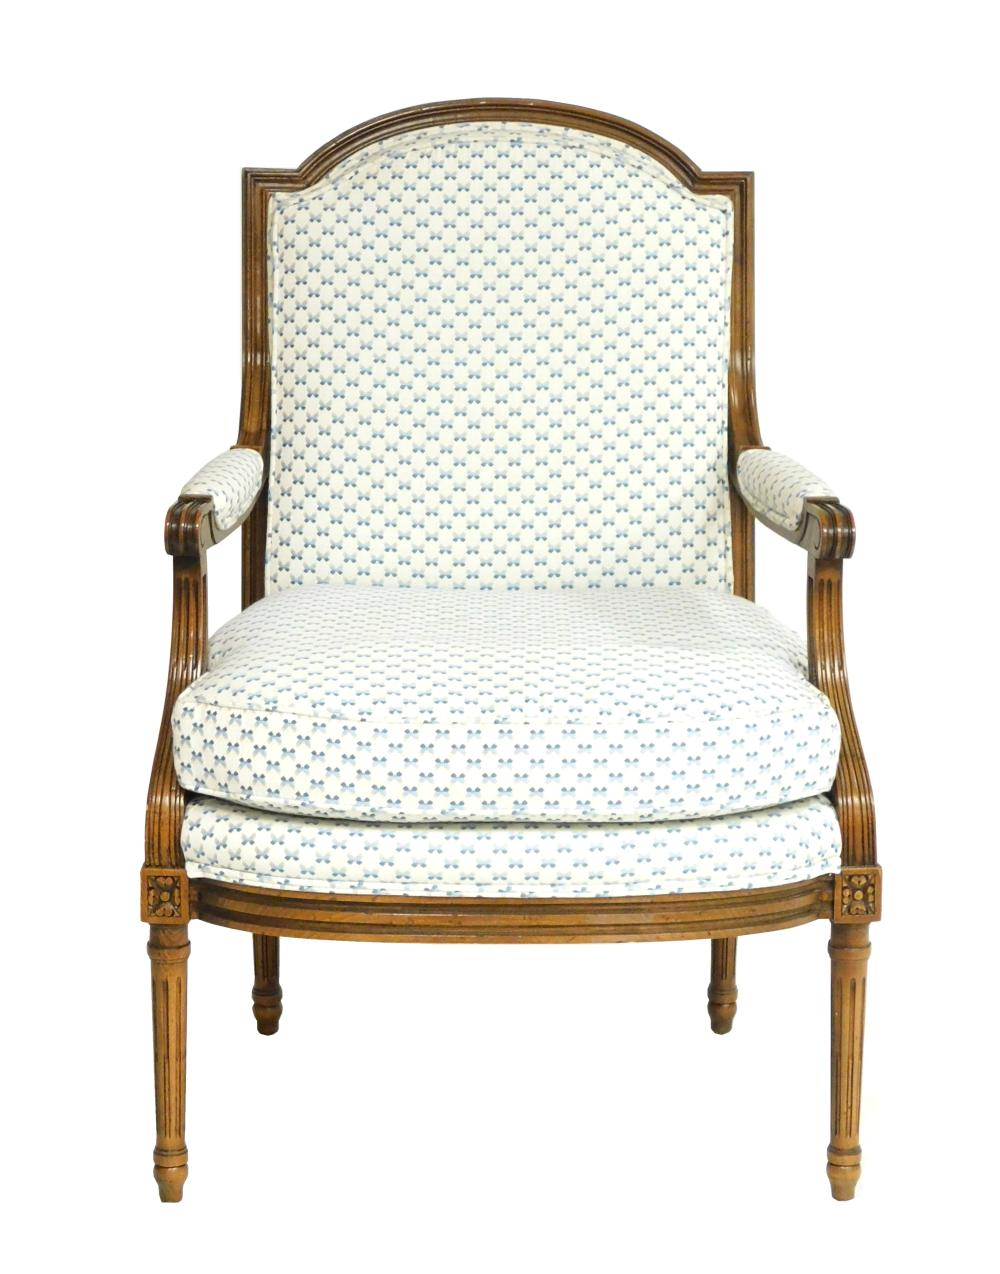 French style open armchair by Baker Furniture, carved frame, blue and white upholstery to shaped back, manchettes, seat and removabl...